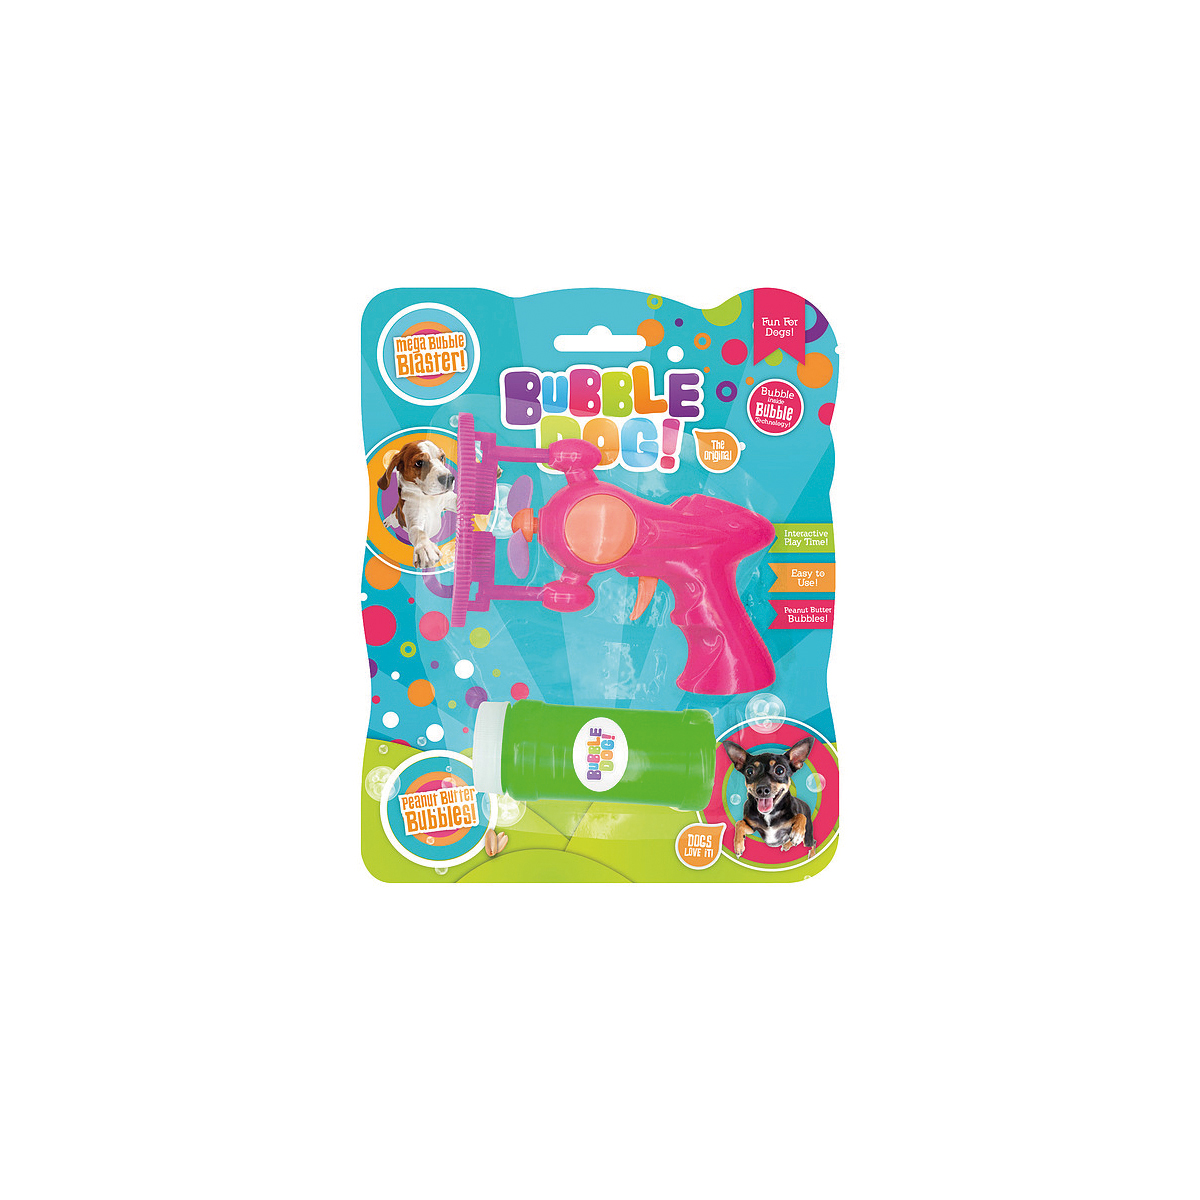 Productafbeelding voor 'Bubble dog big bubbles electric gun roze'